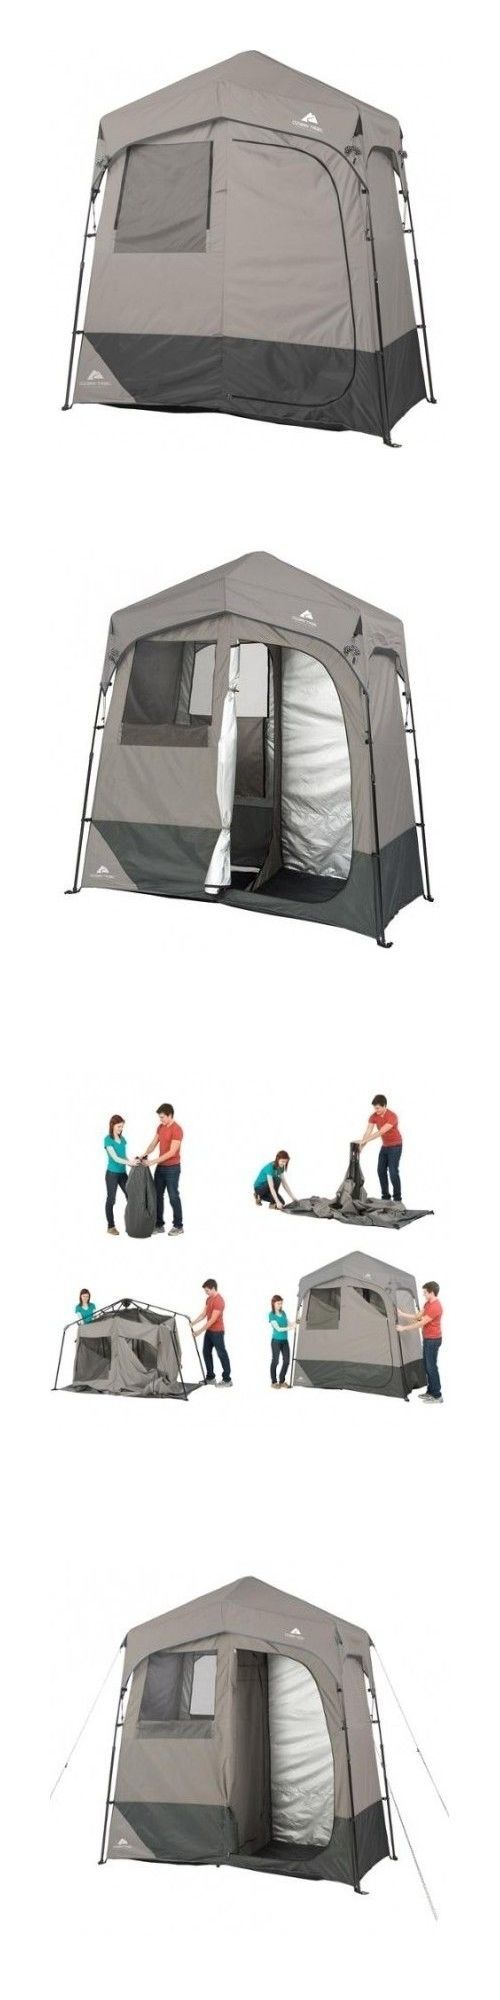 Portable Showers and Accessories 181396: Camping Shower Tent Portable Outdoor Solar Shelter Privacy Changing Instant New BUY IT NOW ONLY: $147.99